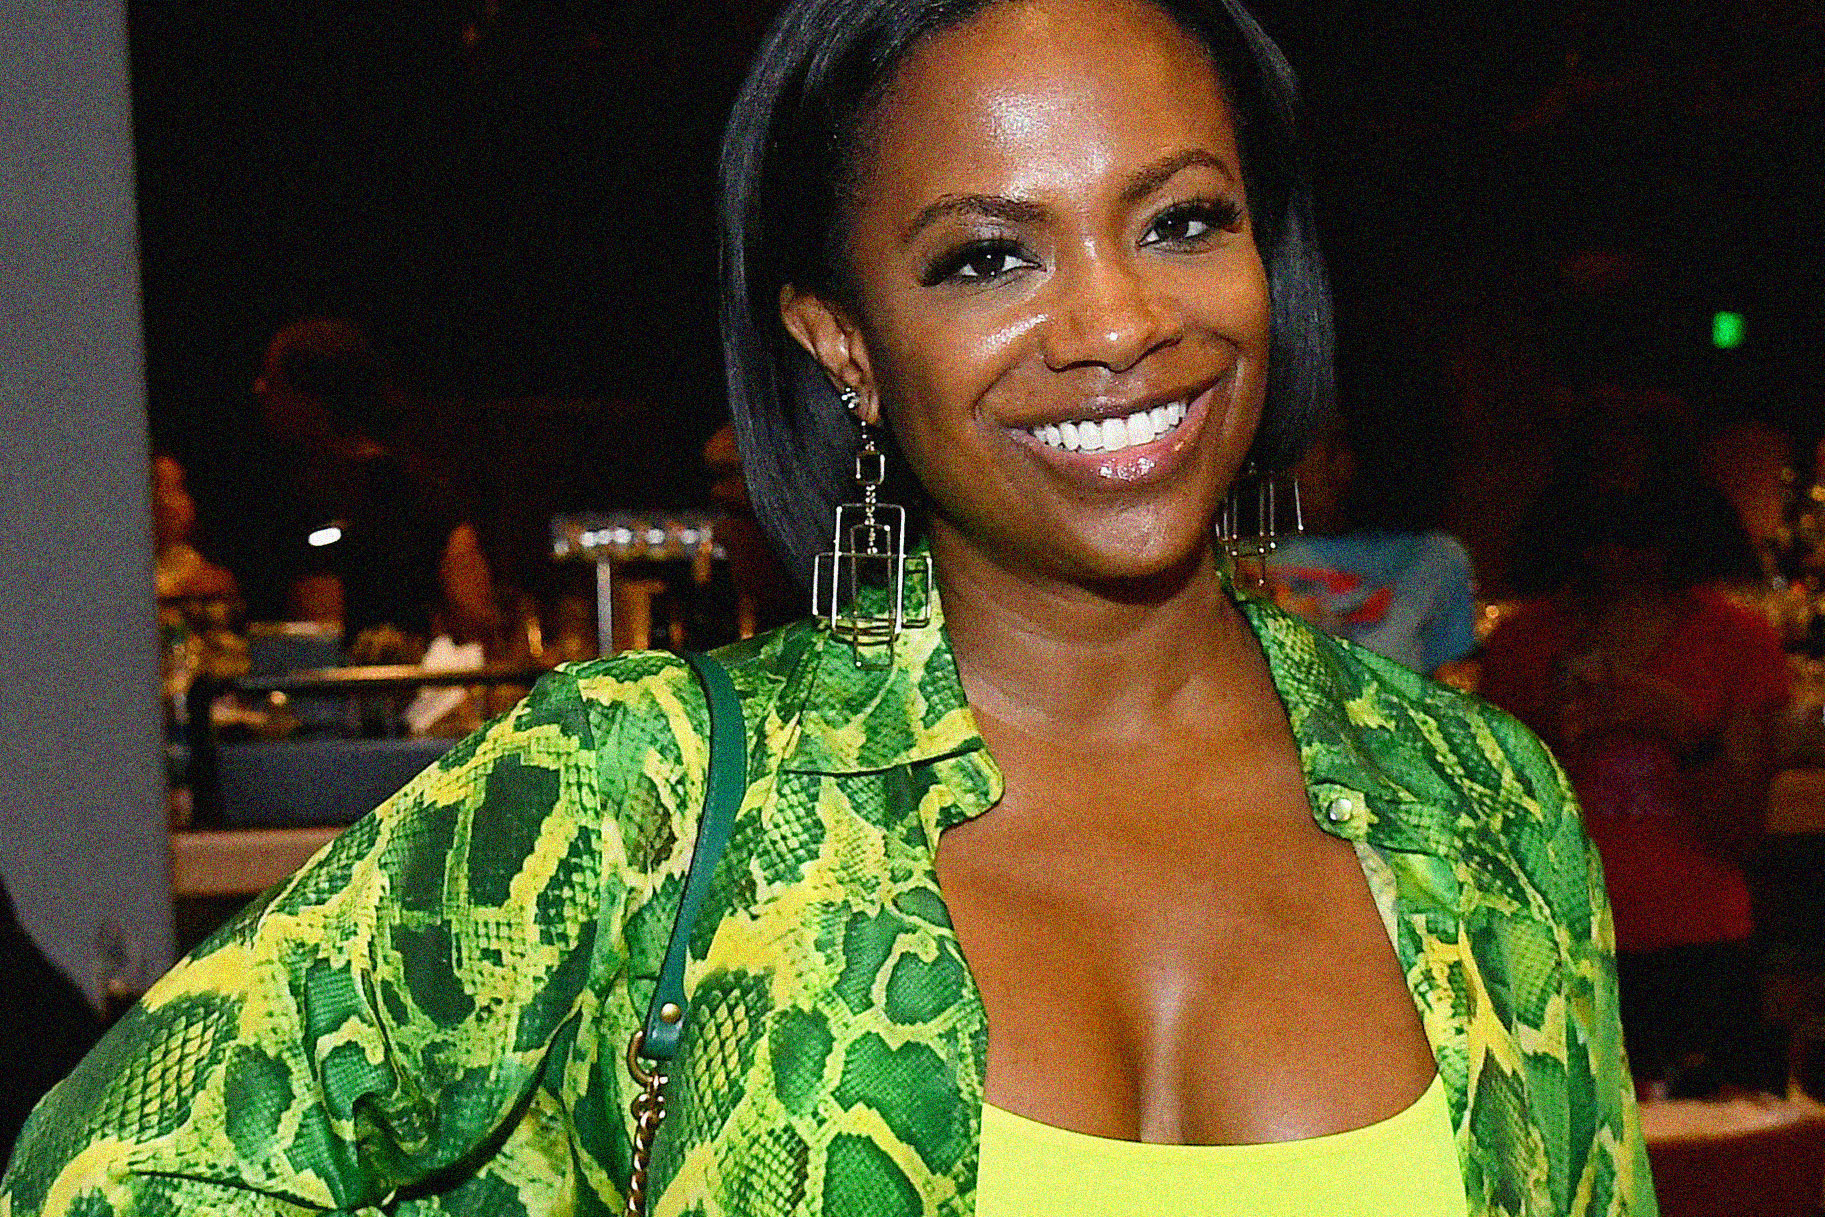 kandi-burruss-video-triggers-a-debate-in-the-comments